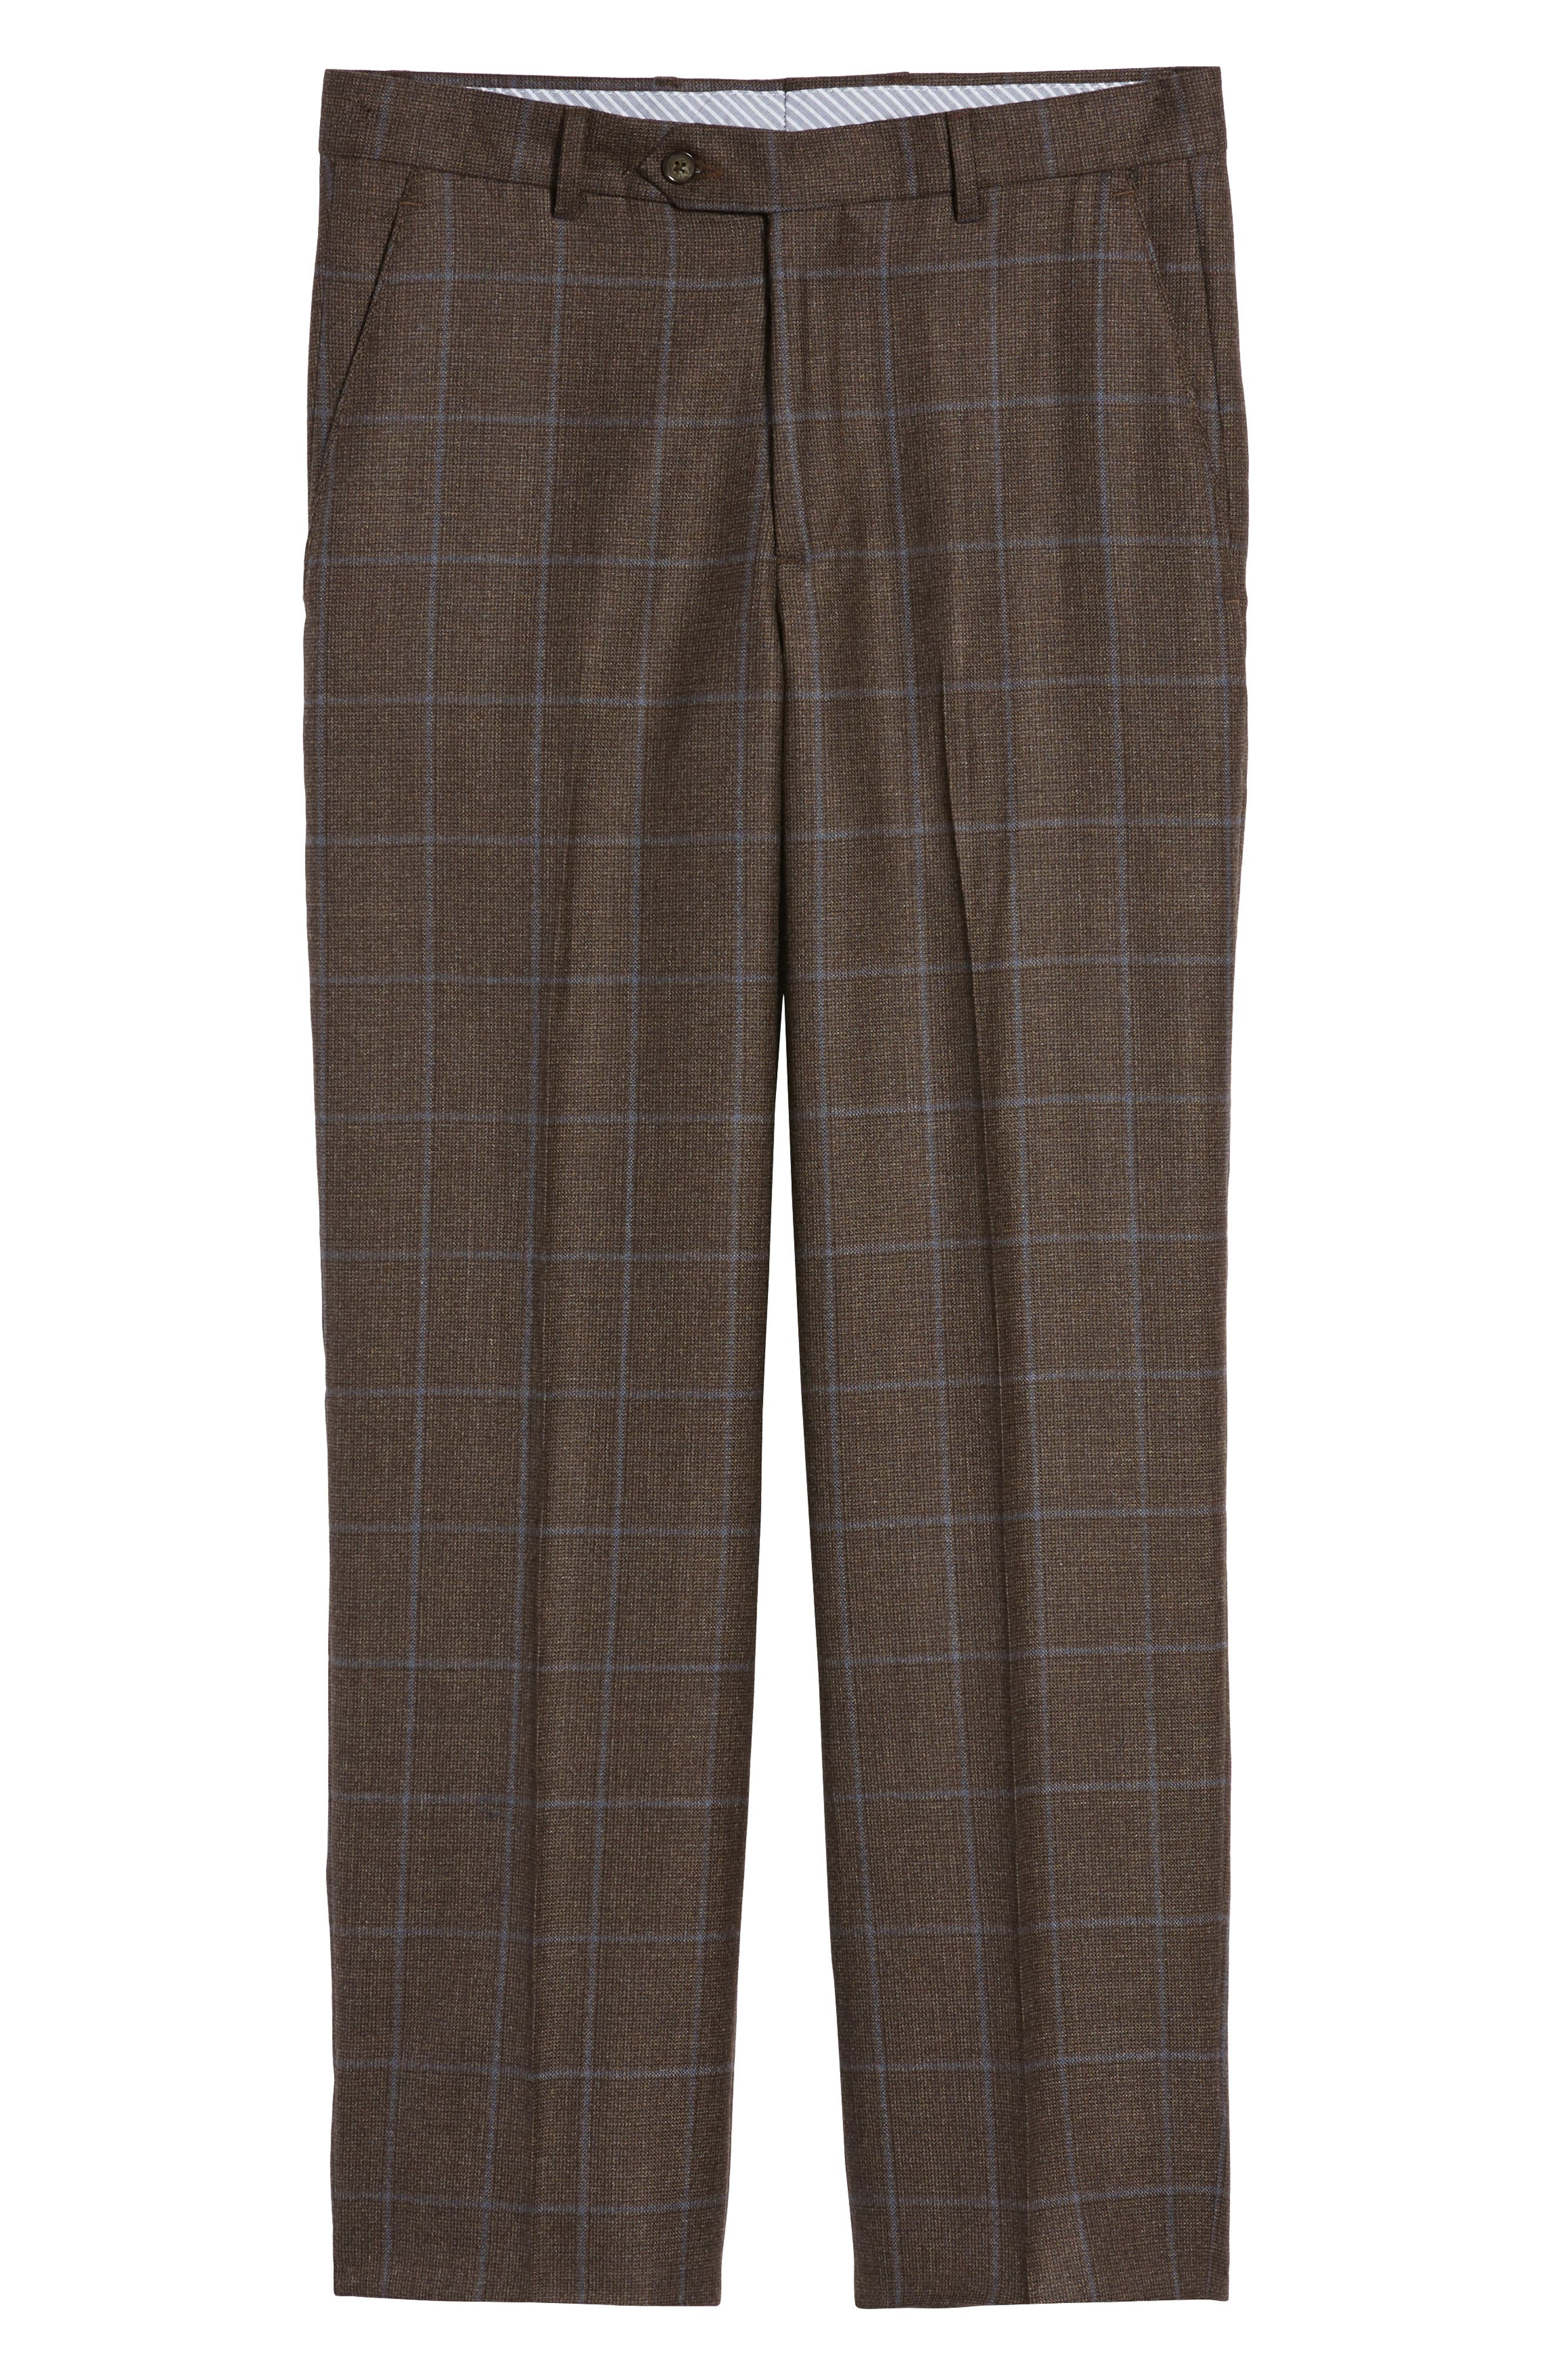 Flat Front Windowpane Wool Trousers,                             Alternate thumbnail 6, color,